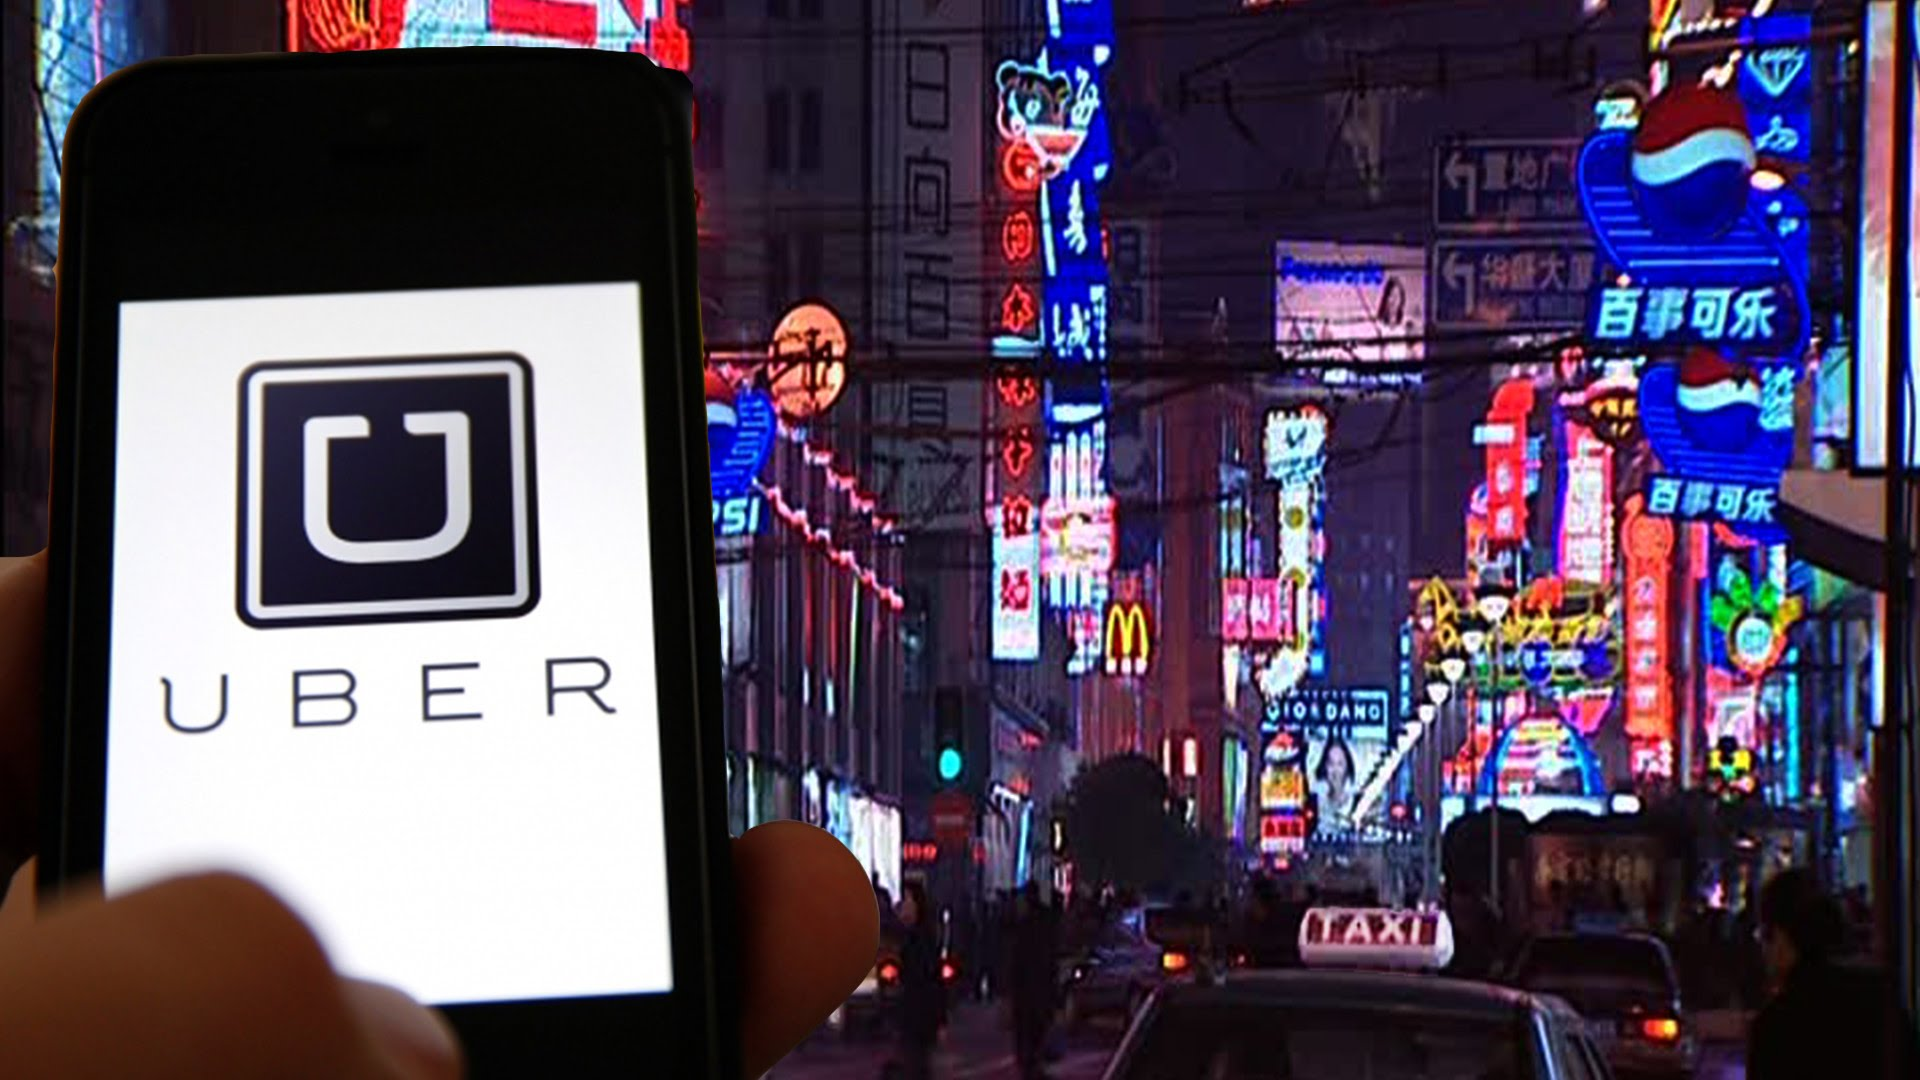 Uber has come a long way since it launched in China in 2014. Uber China might be better referred to under its Chinese name,  Youbu , to better distinguish it from the rest of the company and to reflect its increasingly independent path.